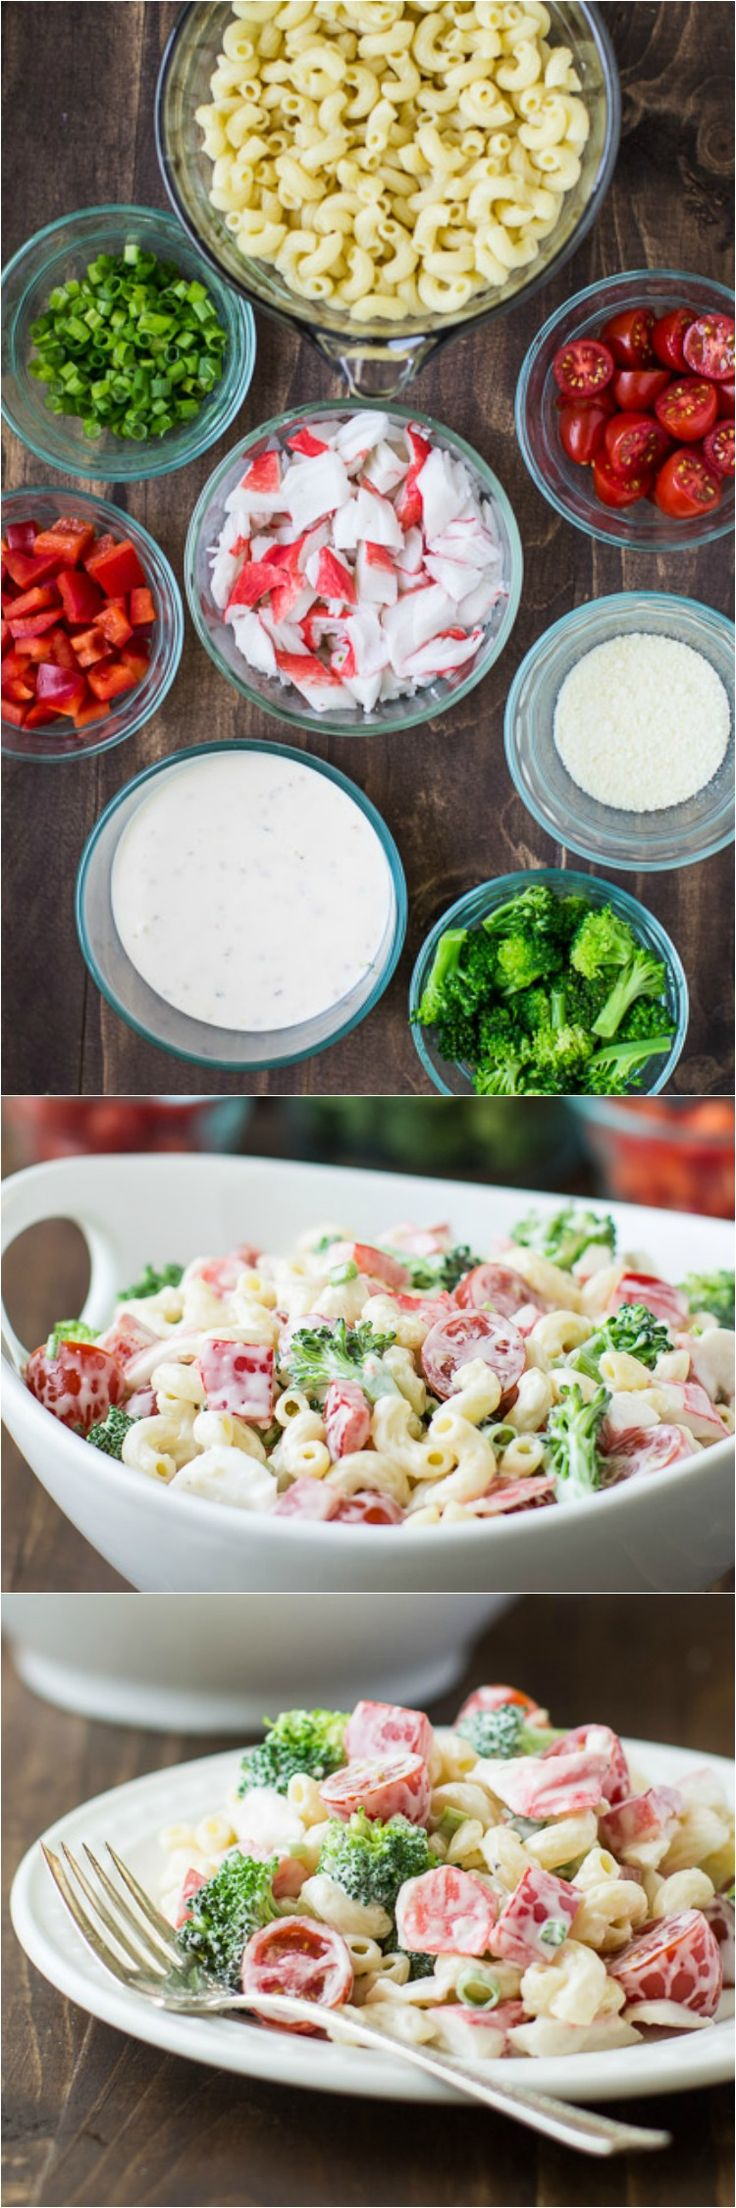 Seafood Pasta Salad is perfect for summer! Your favorite seafood and tons of fresh veggies are tossed in a zesty dressing with chewy pasta. Easy, filling, and so tasty!